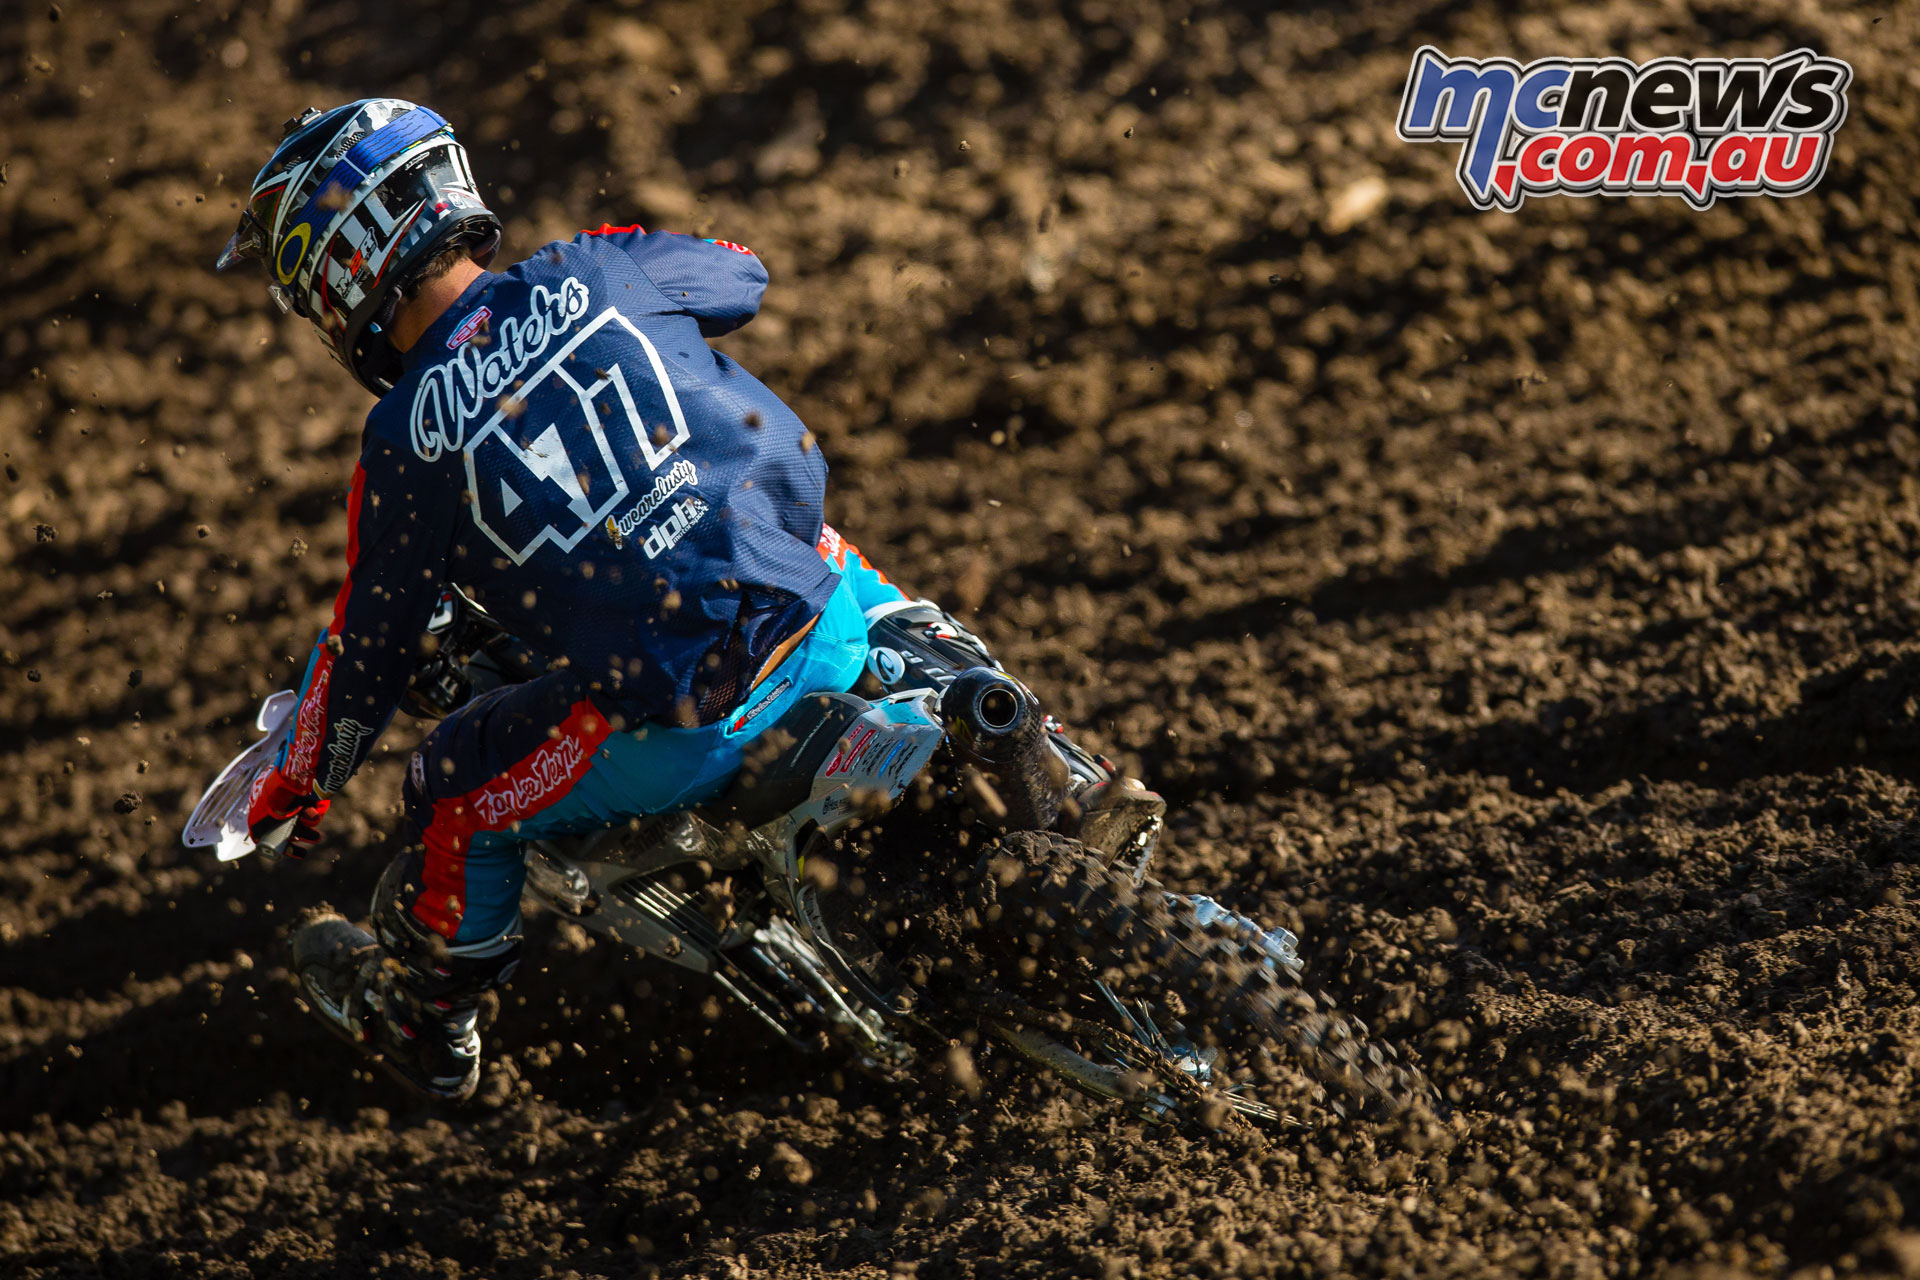 AMA MX Rnd Thunder Valley Waters Privateers JK MX Lakewood